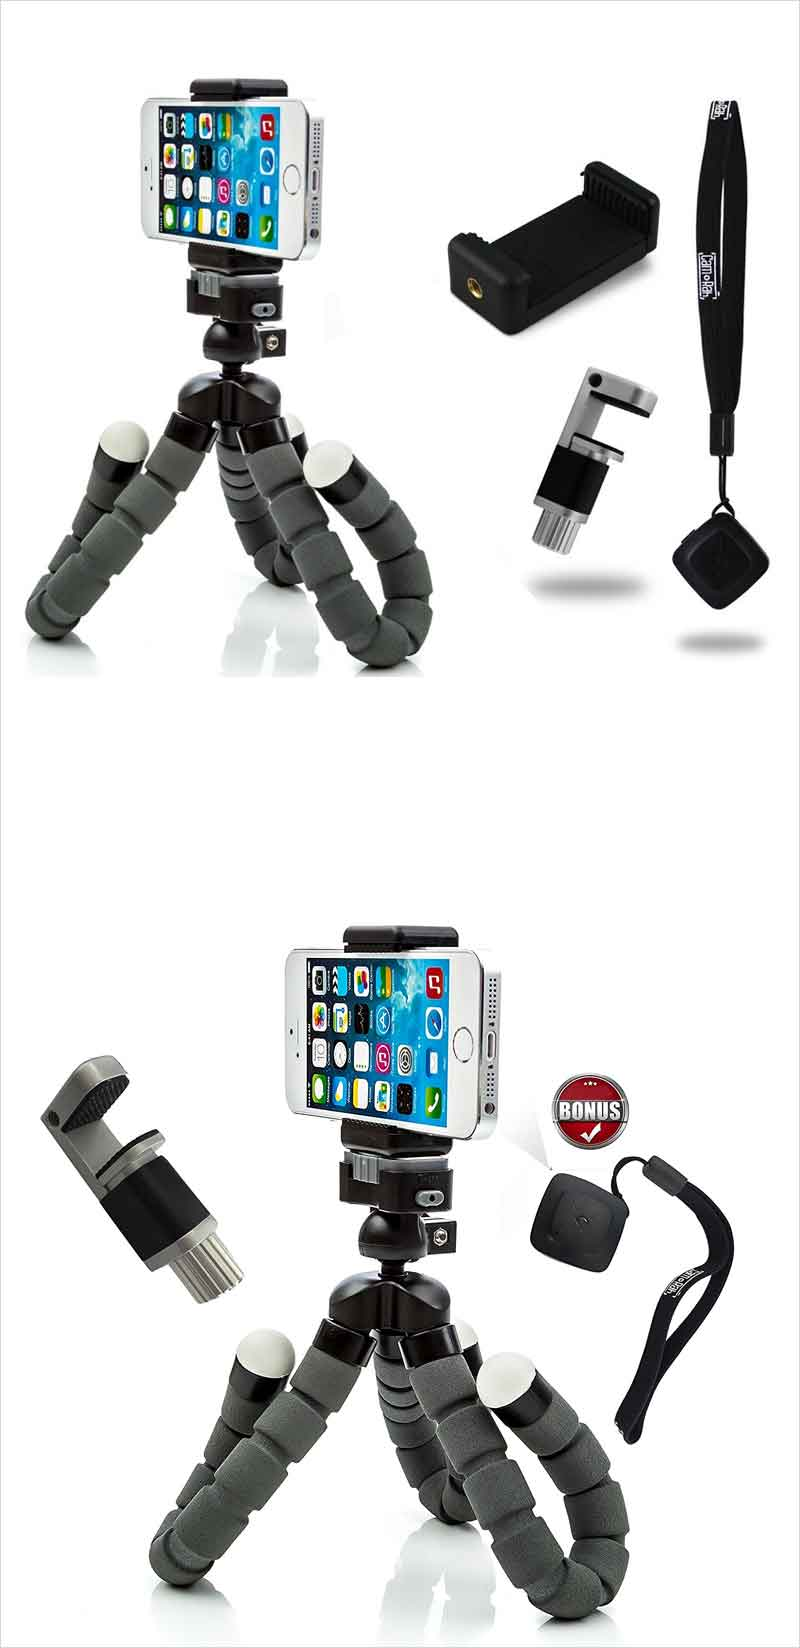 CamRah-Flexible-Tripod-Pro-Series-with-Bluetooth-Shutter